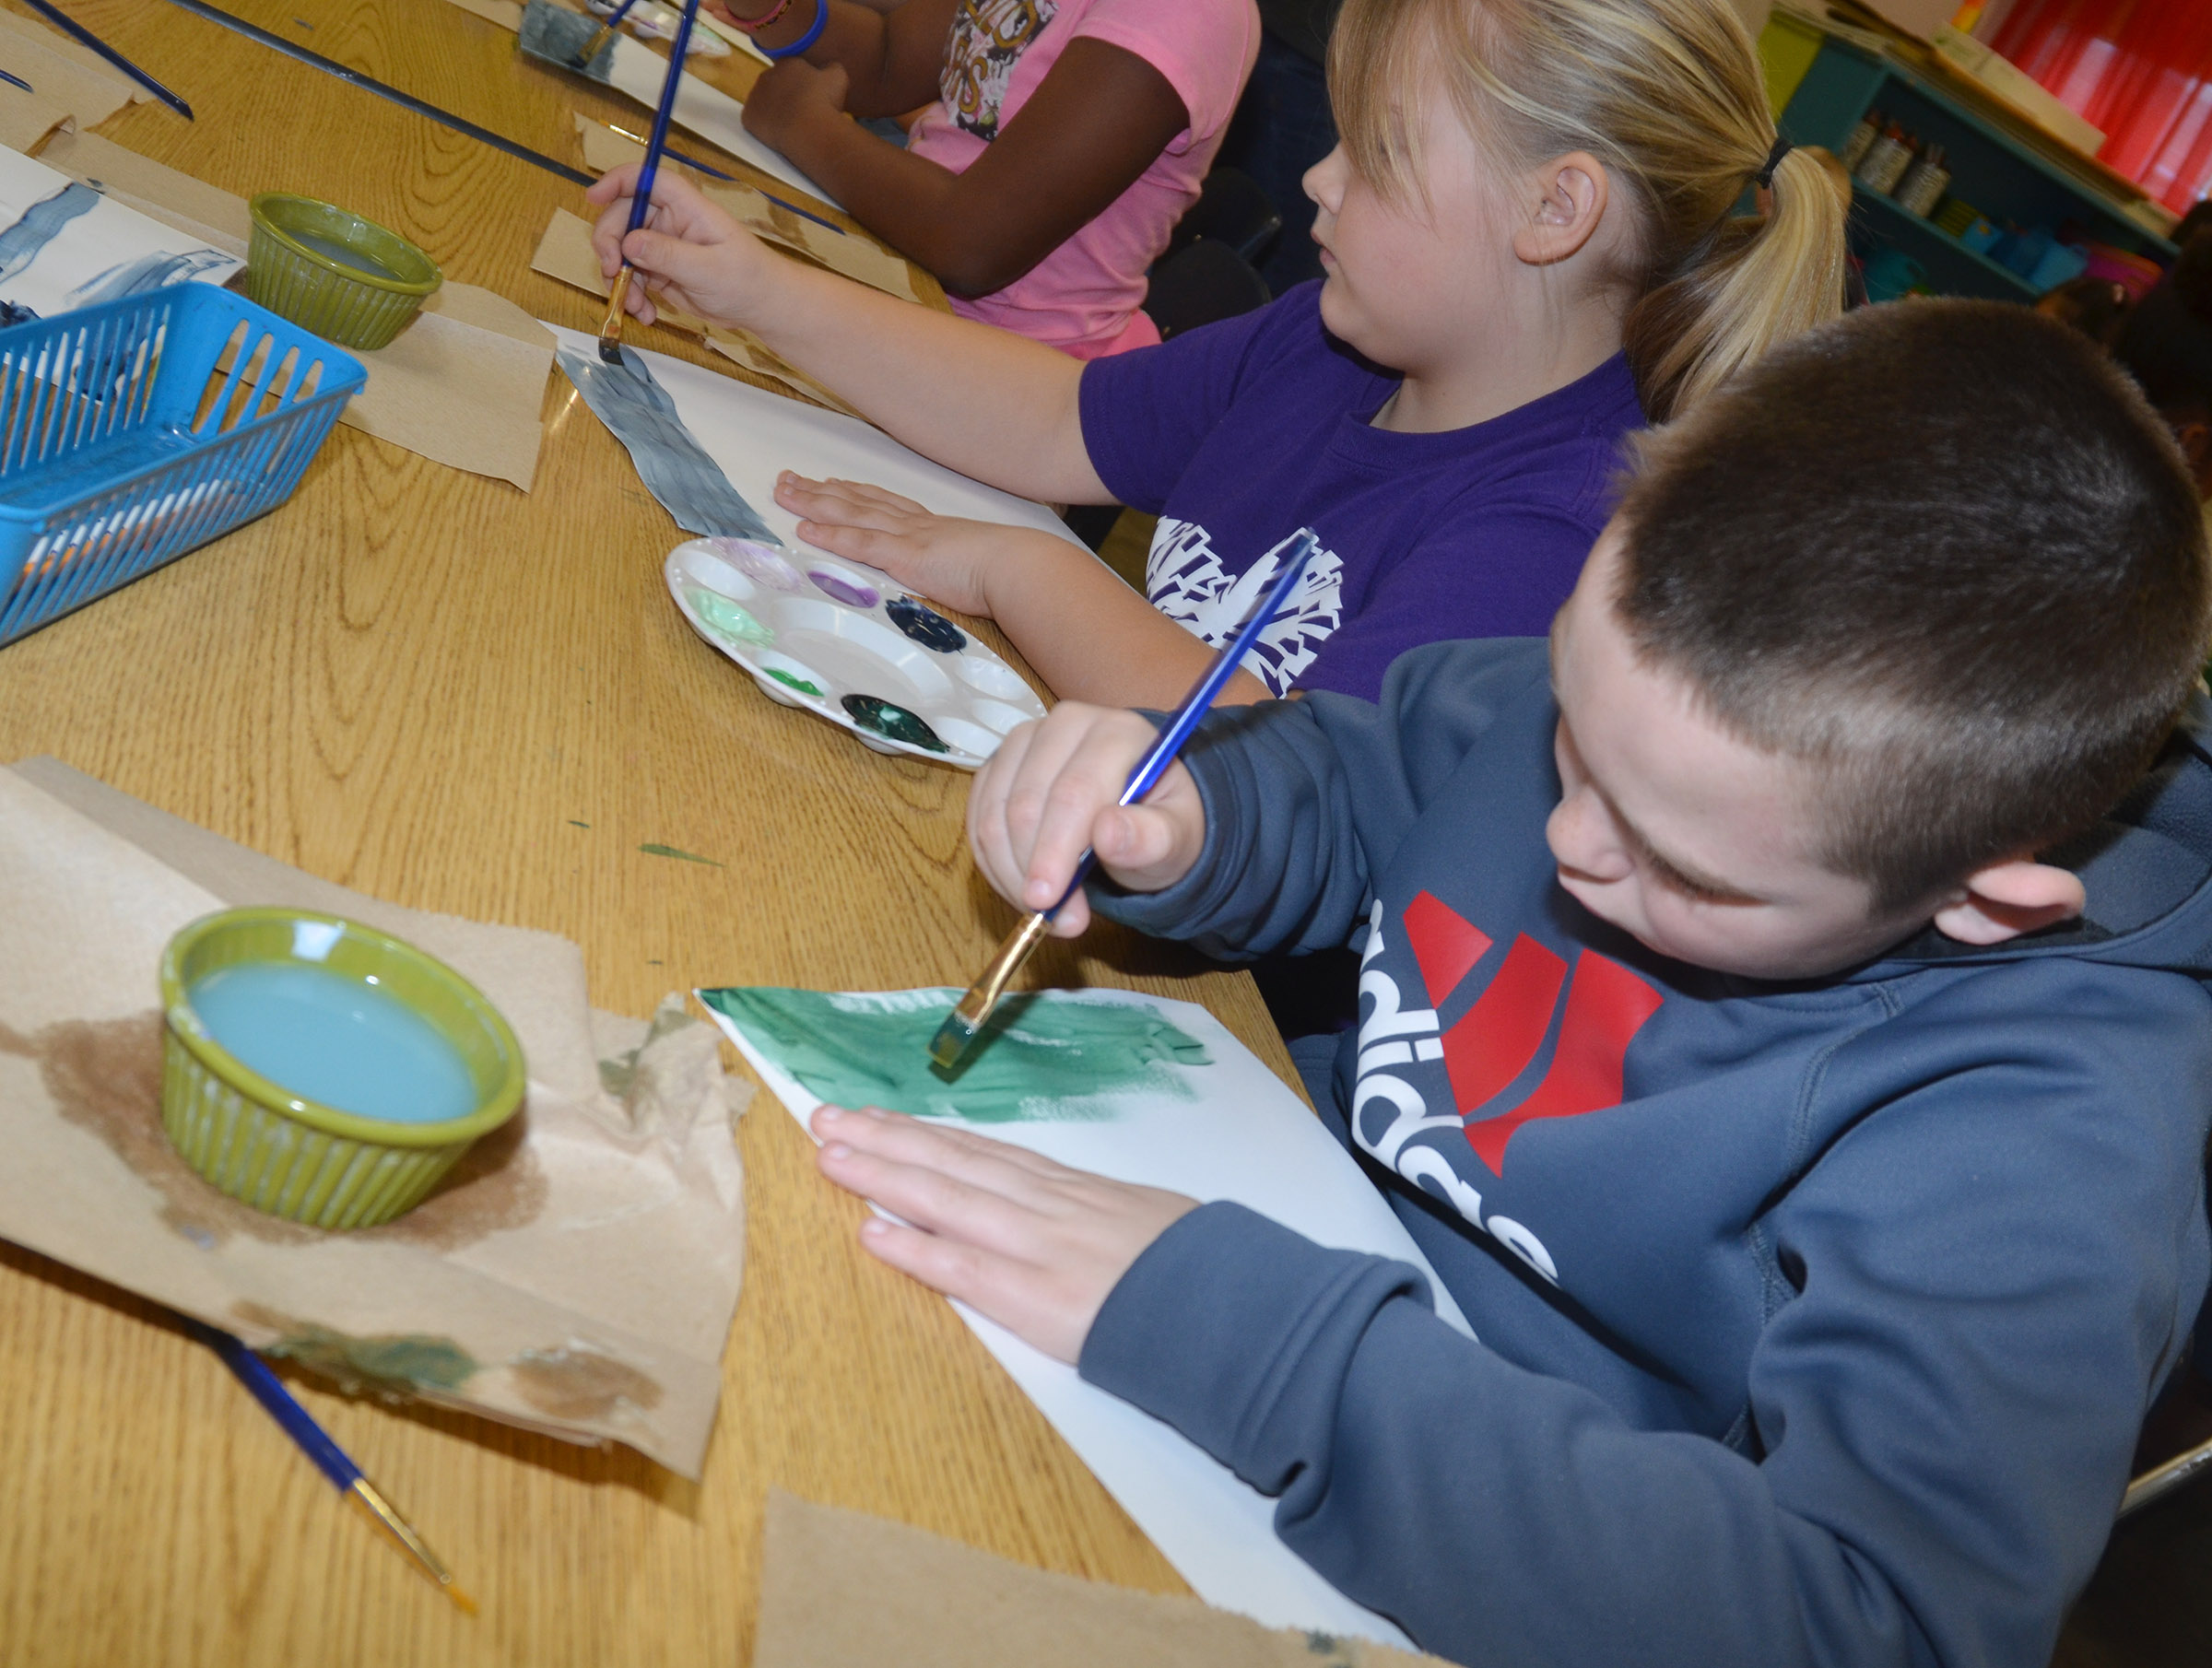 CES second-graders Addysen England, at left, and Colton Maggard paint the sky in their winter scene.